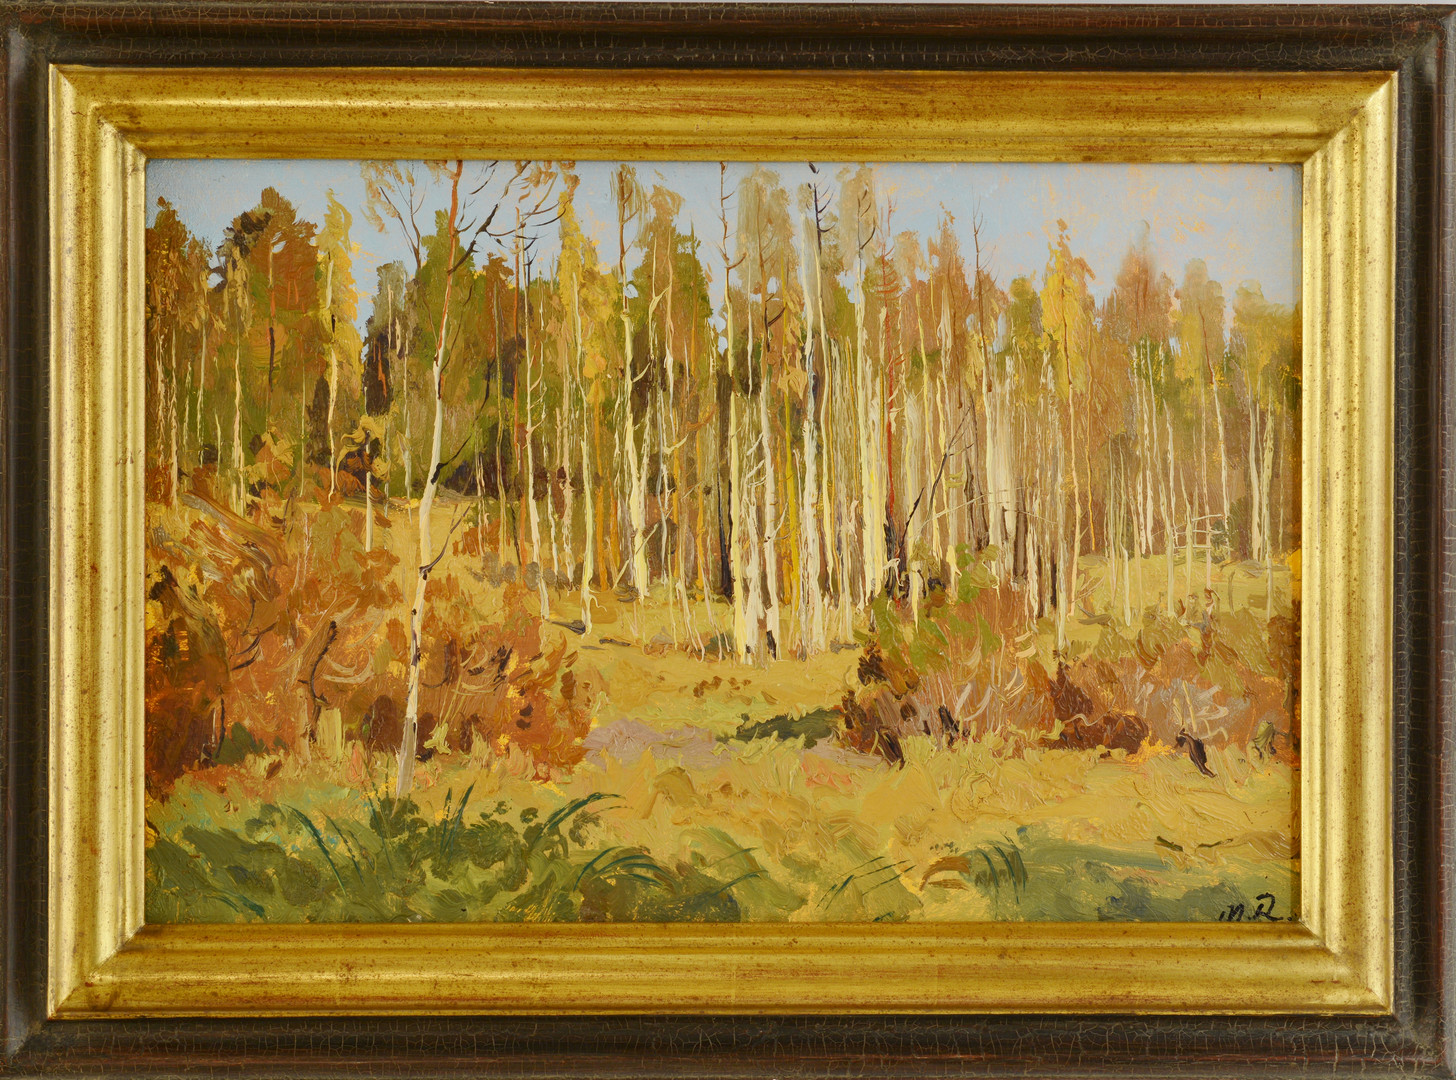 Lot 645: Oil on Board Fall Landscape